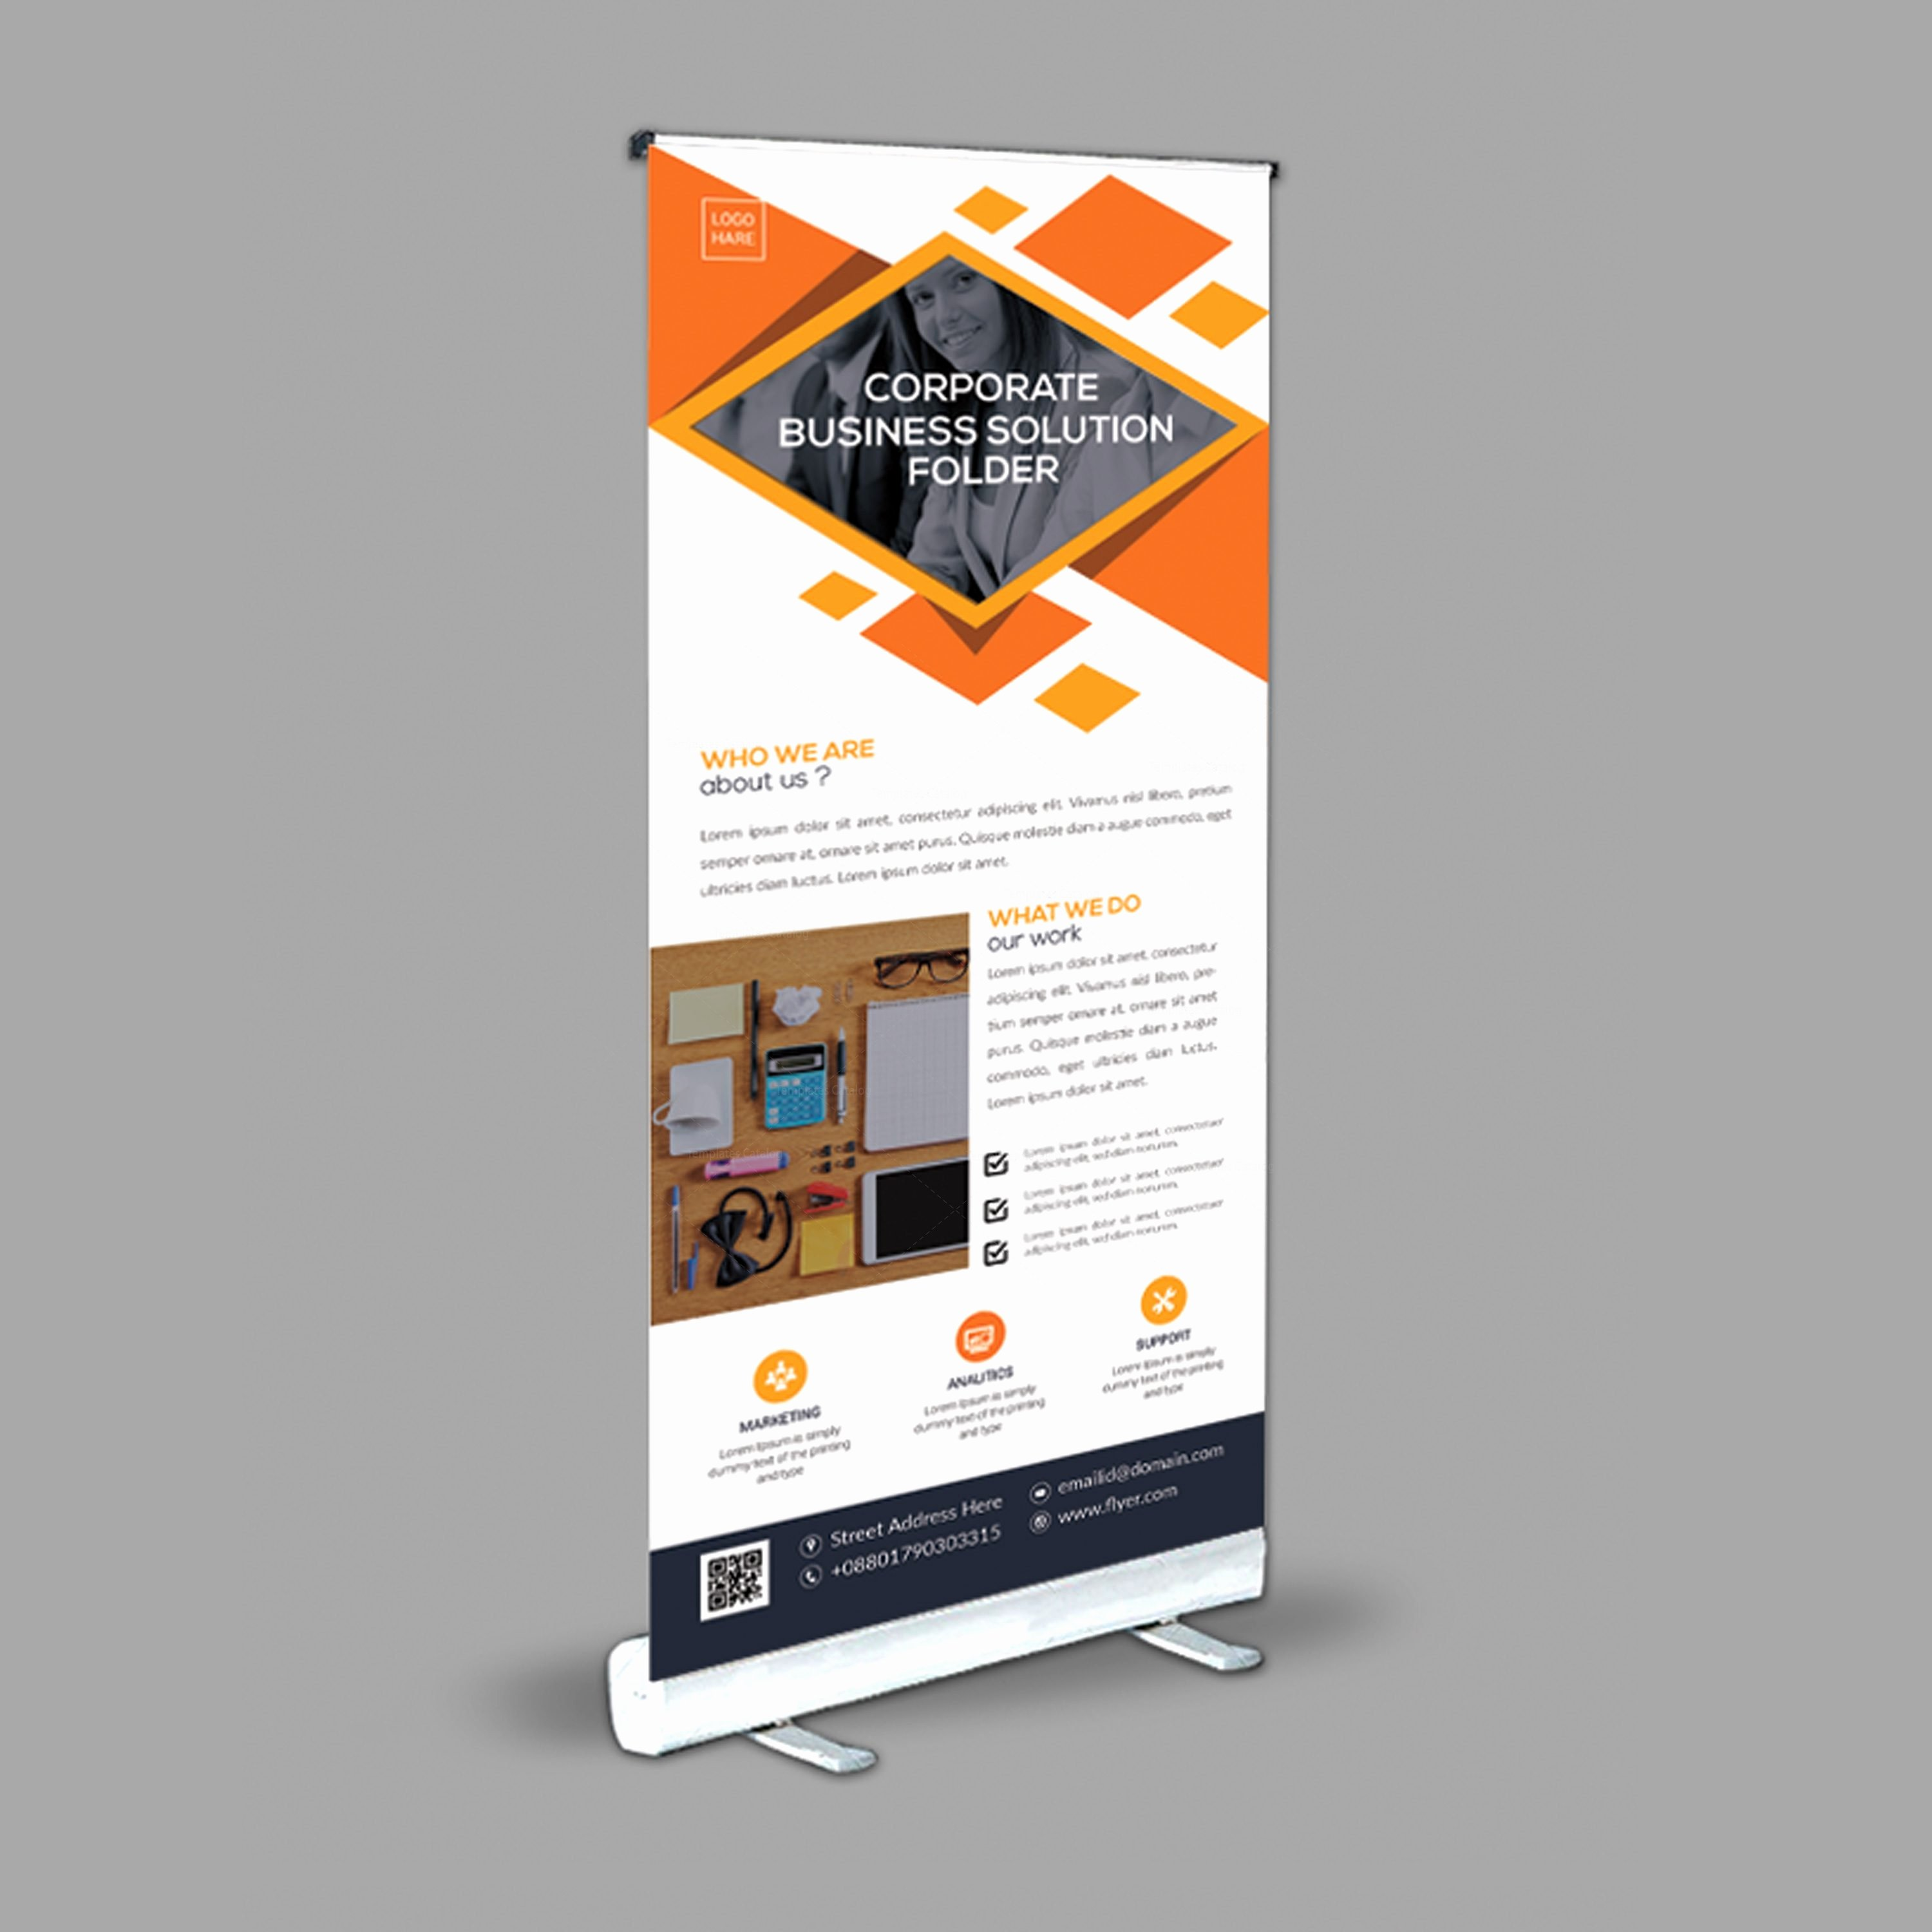 Roll Up Banners Designs Elegant Stylish Roll Up Banner Design Template Template Catalog